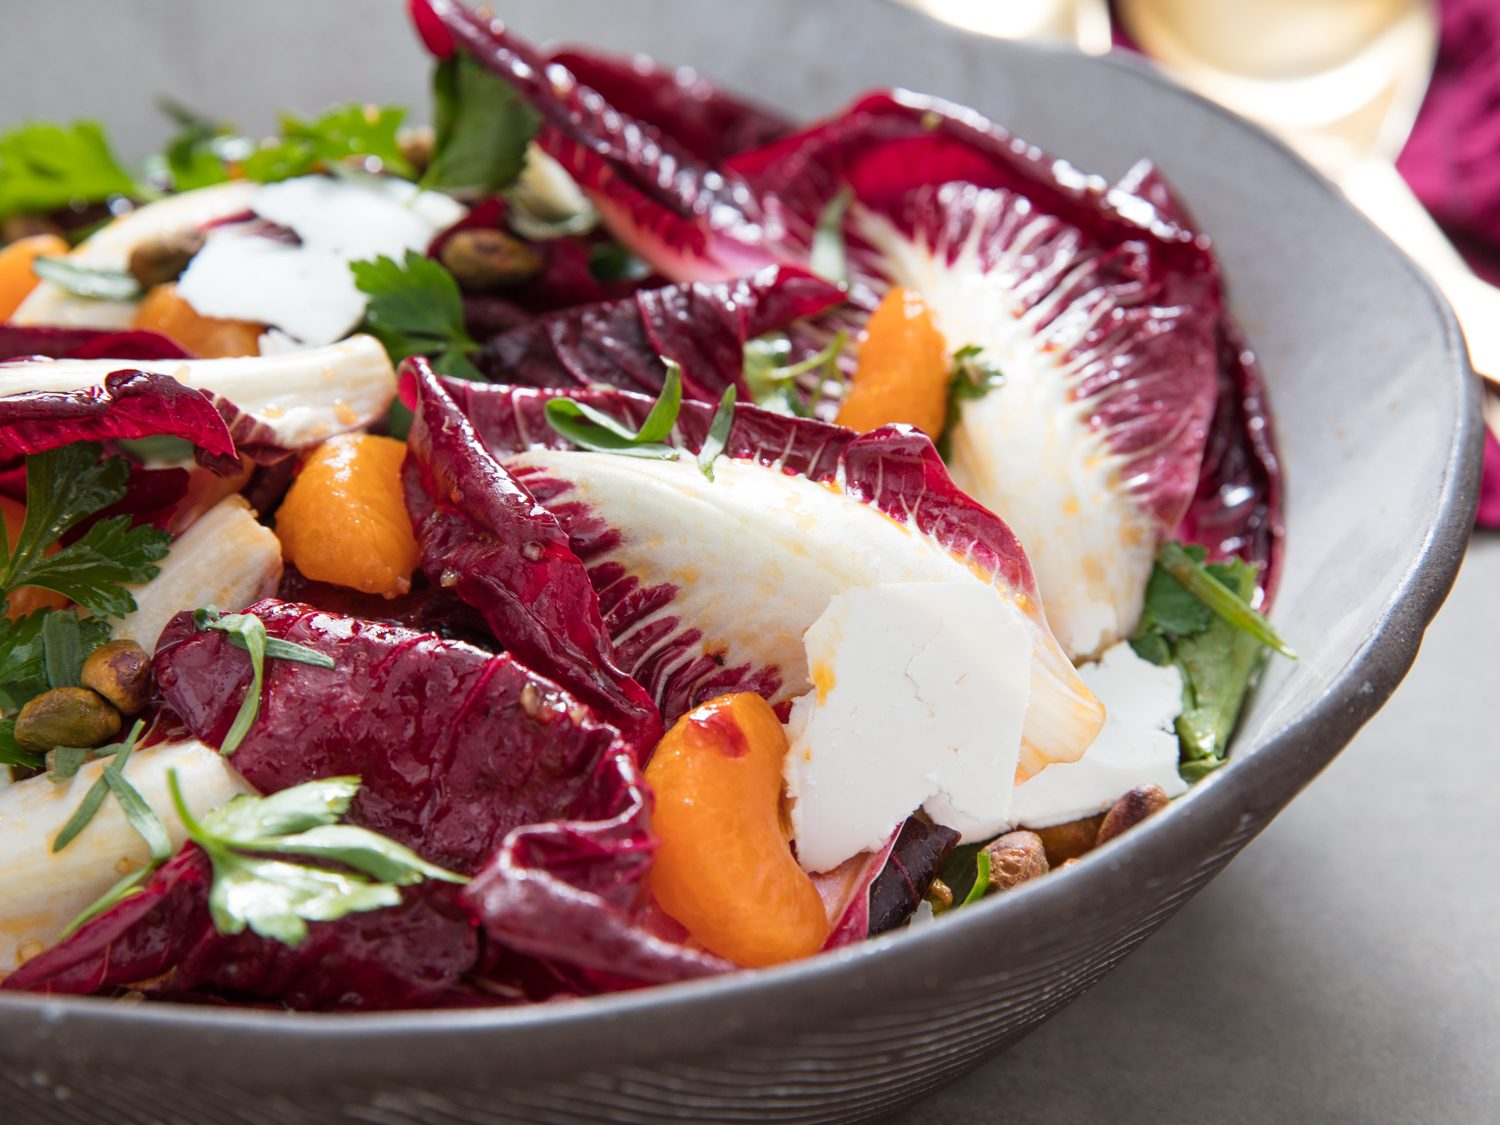 Trevisano Radicchio Salad With Satsumas, Pistachios, and Calabrian Chili Vinaigrette